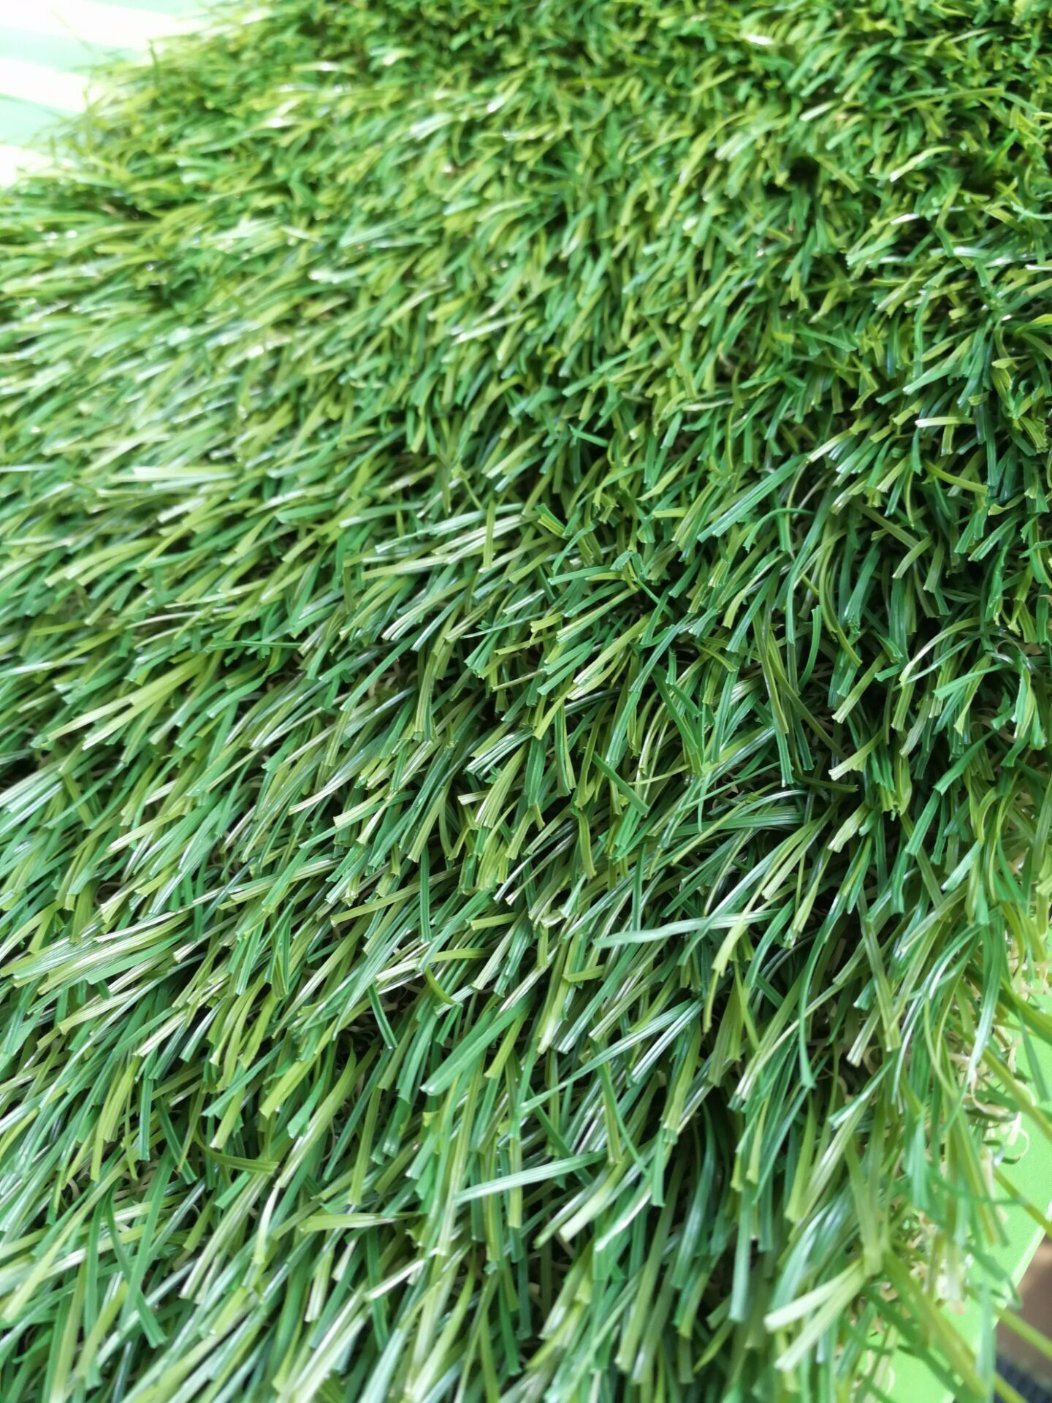 Natural Looking Synthetic Grass for Garden Landscaping Decorations